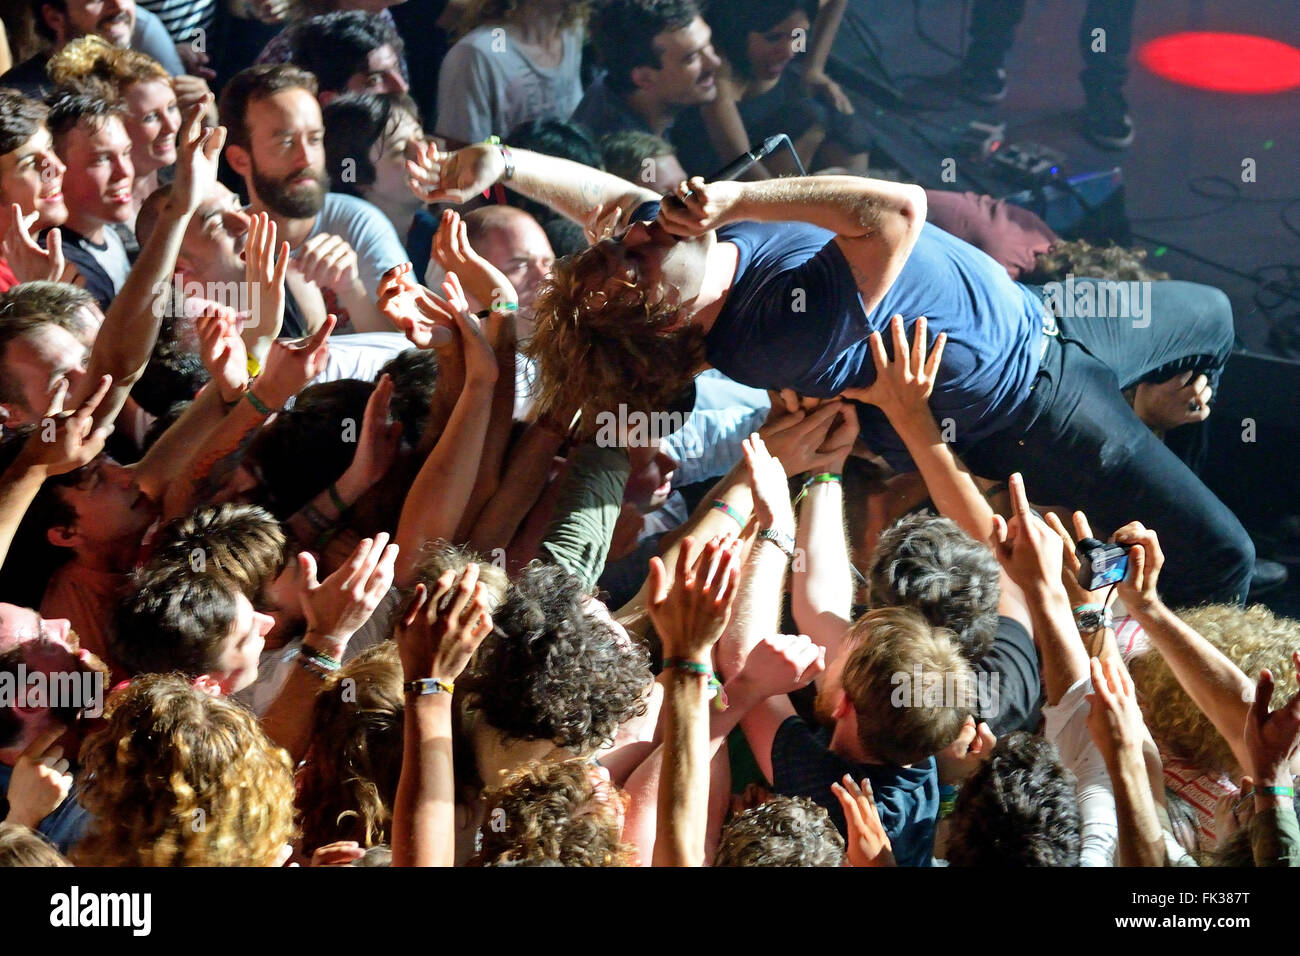 BARCELONA - 30 mai : Le guitariste de Ty Segall Band (Bande) effectue au-dessus des spectateurs (crowd surfing Photo Stock